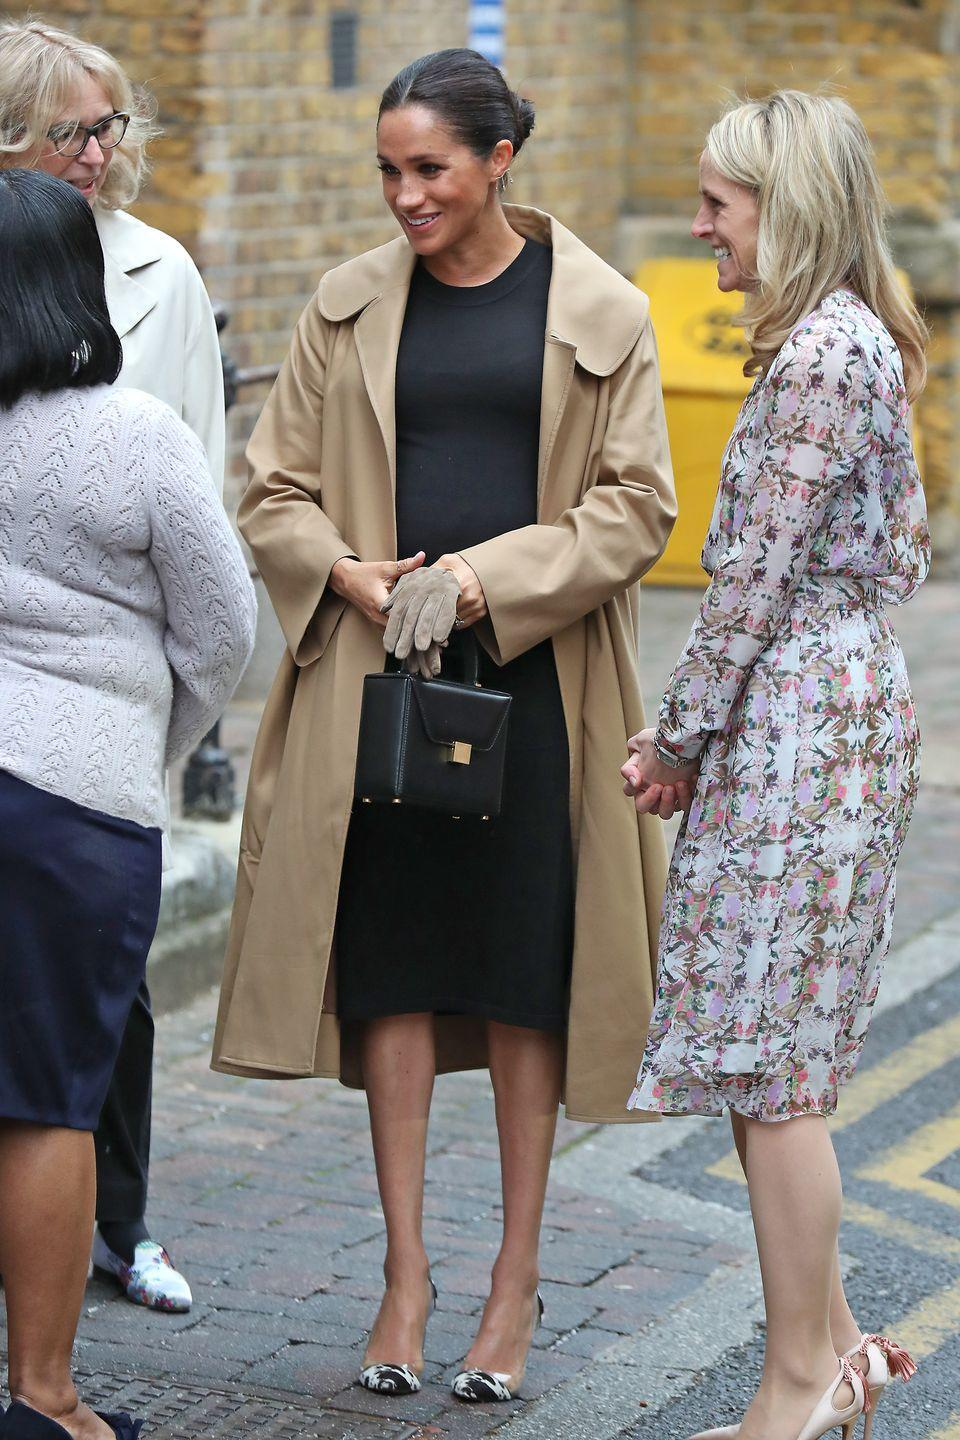 "<p>The Duchess of Sussex wore an Oscar de la Renta coat over a black dress by Hatch for a visit to Smart Works, one of <a href=""https://www.townandcountrymag.com/society/tradition/a25834957/meghan-markle-hatch-maternity-dress-smart-works/"" rel=""nofollow noopener"" target=""_blank"" data-ylk=""slk:her newly announced Royal patronages"" class=""link rapid-noclick-resp"">her newly announced Royal patronages</a>. The Duchess paired the look with Kimai earrings and printed pumps. </p><p><a class=""link rapid-noclick-resp"" href=""https://go.redirectingat.com?id=74968X1596630&url=https%3A%2F%2Fwww.hatchcollection.com%2Fcollections%2Fdresses%2Fproducts%2Fthe-eliza-dress&sref=https%3A%2F%2Fwww.townandcountrymag.com%2Fstyle%2Ffashion-trends%2Fg3272%2Fmeghan-markle-preppy-style%2F"" rel=""nofollow noopener"" target=""_blank"" data-ylk=""slk:SHOP NOW"">SHOP NOW</a><em>The Eliza Dress by Hatch, $218 </em></p>"